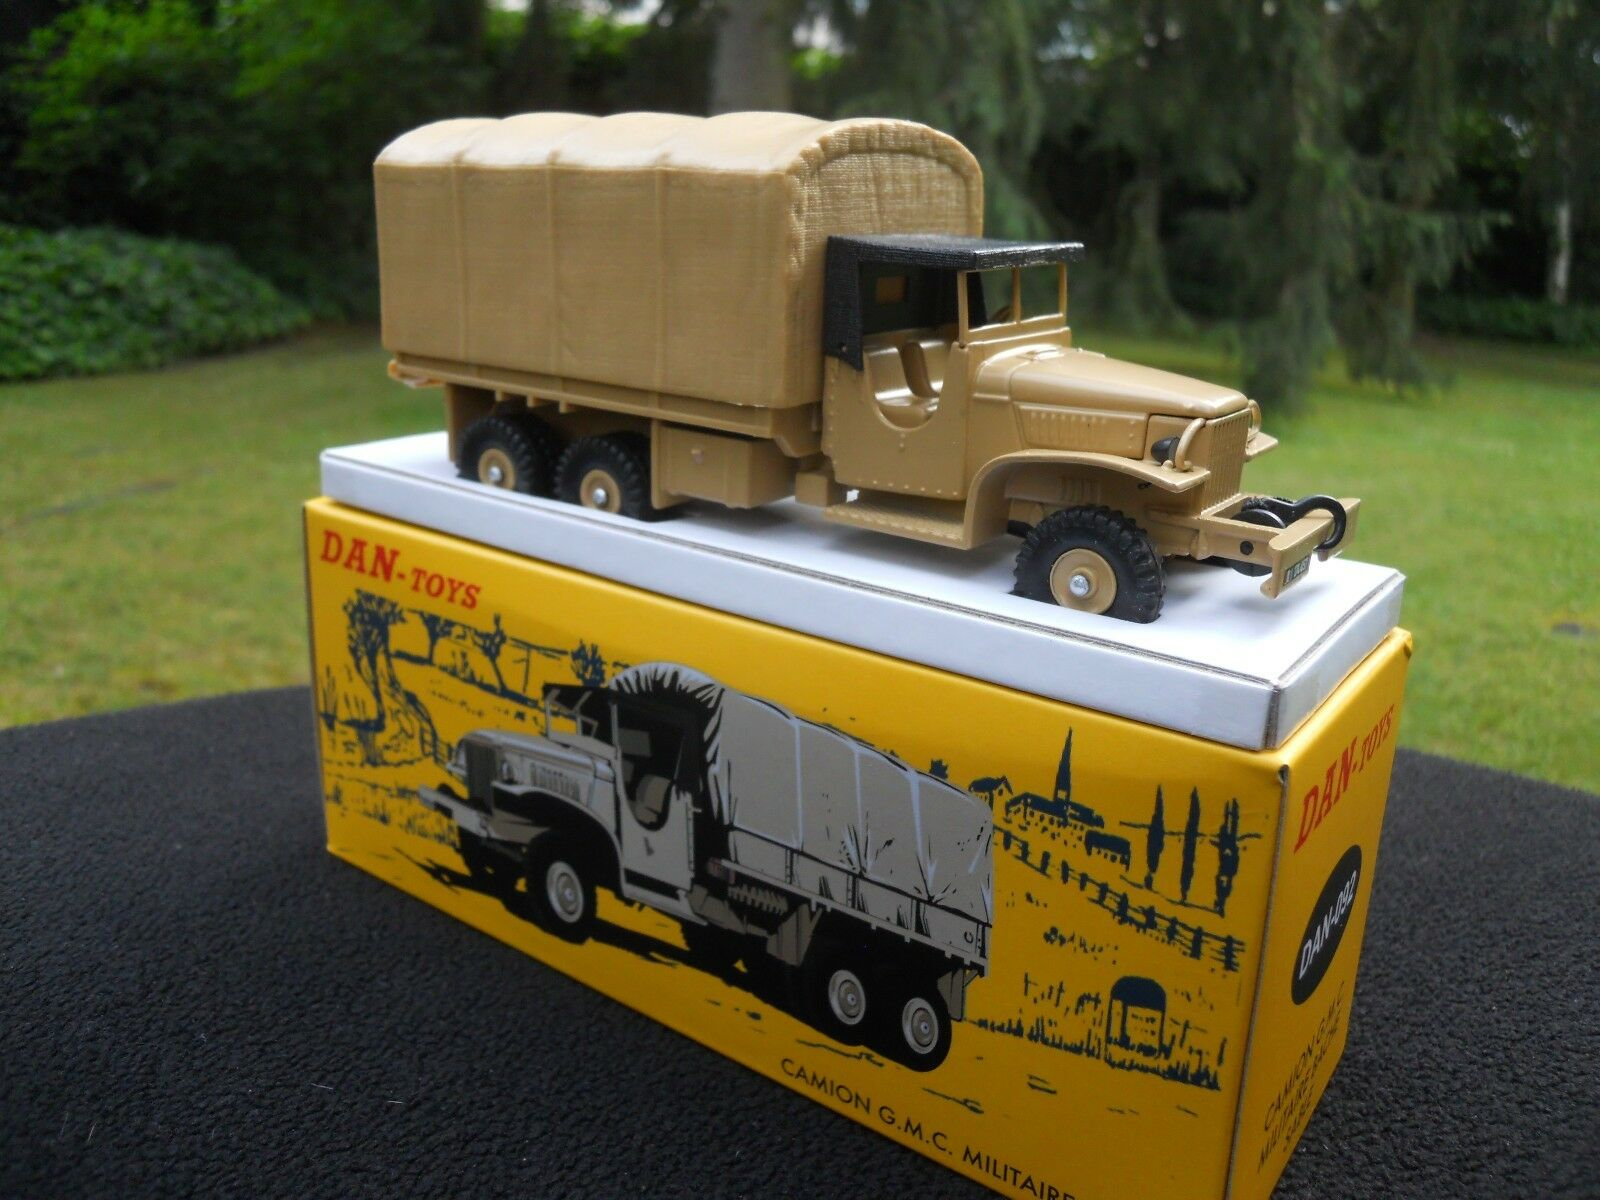 VEHICULE MILITAIRE DAN TOYS 092 GMC BACHE COULEUR SABLE  MINT IN BOX